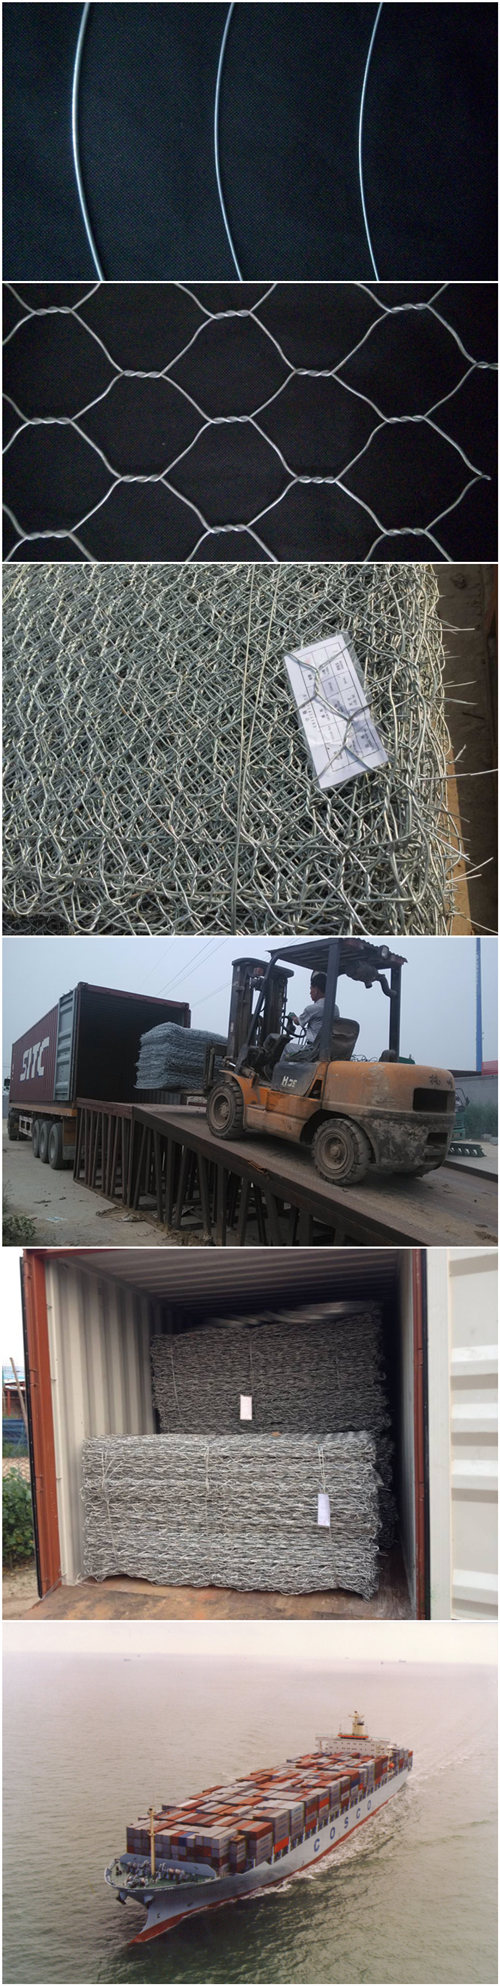 China 9 Years Manufacturer of Gabion Mattress / Reno Mattress